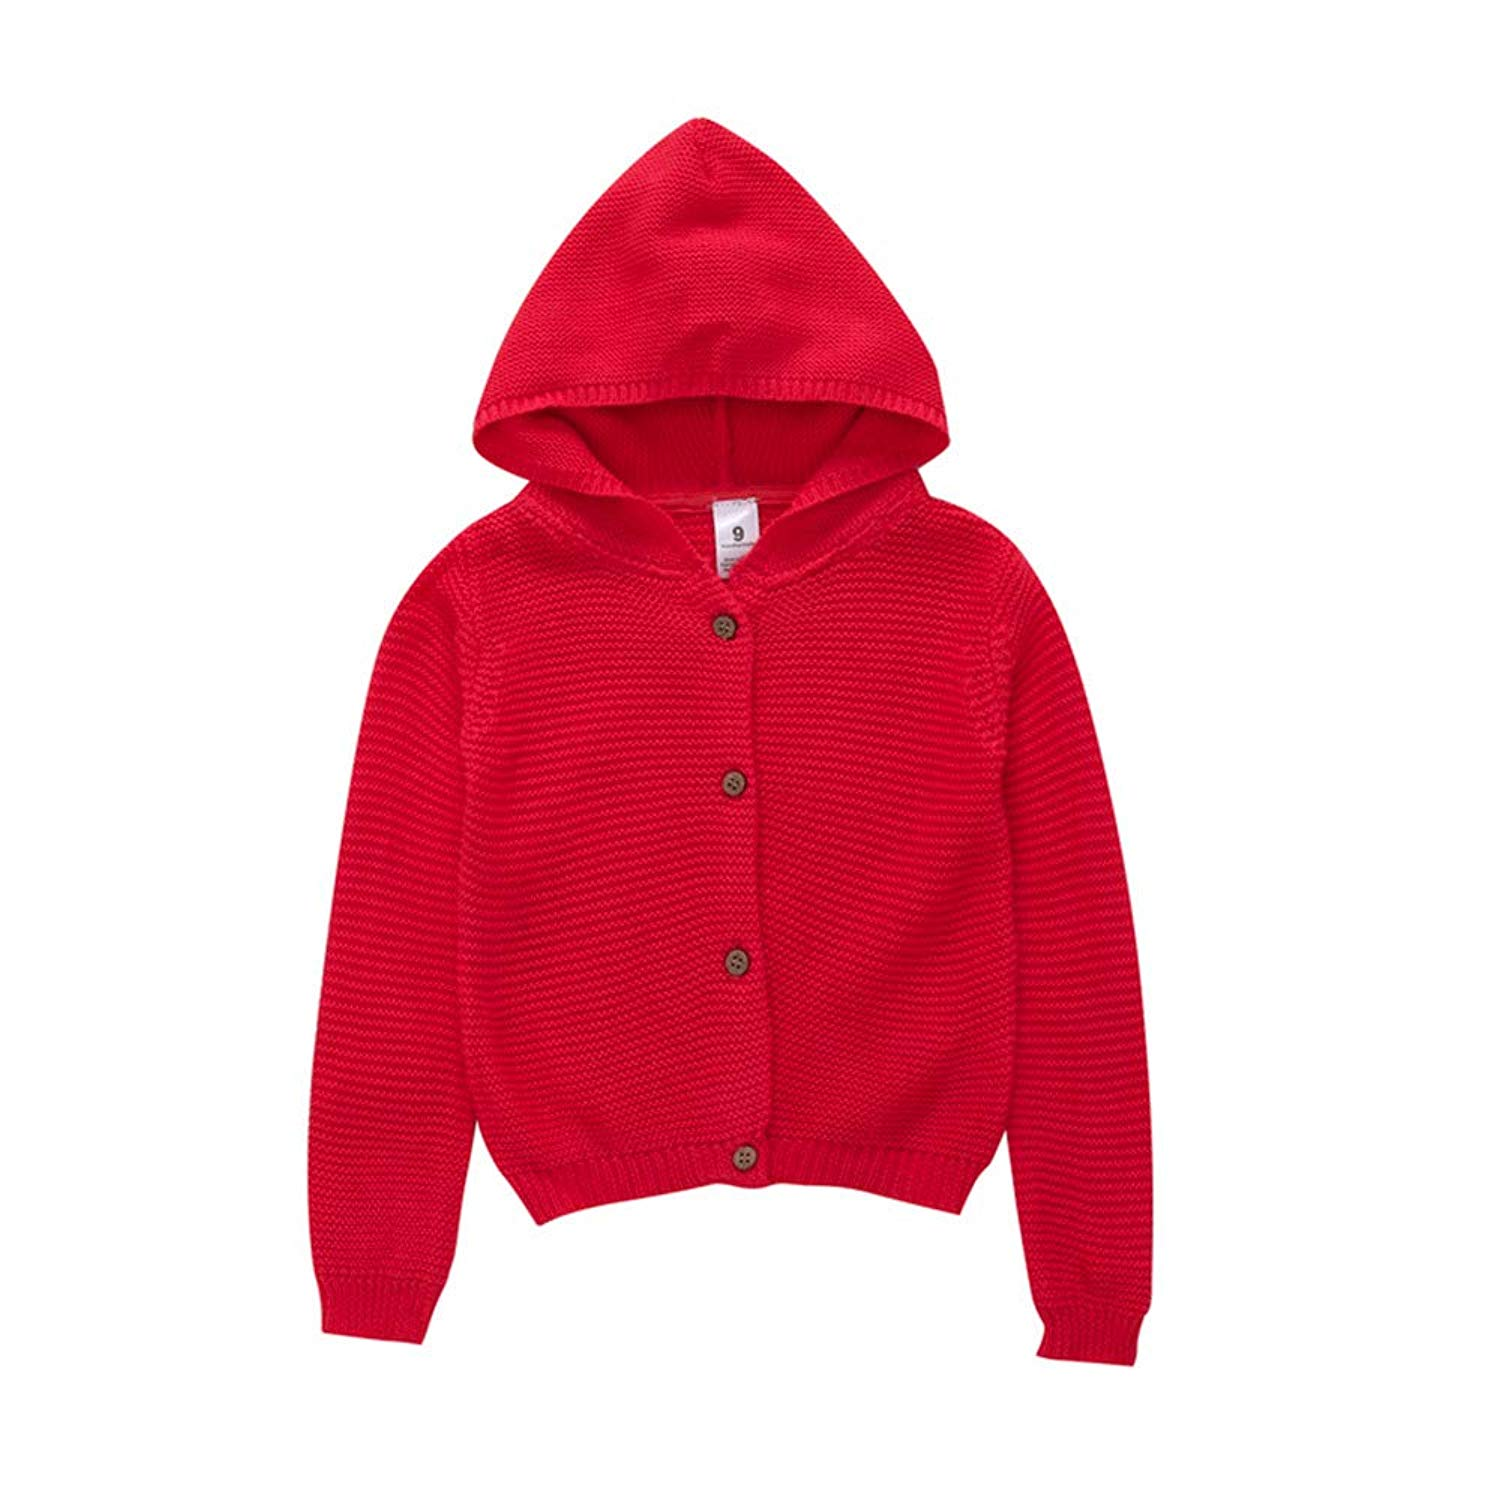 bdbdab26629 Tronet Baby Boy Girl Winter Knitted Bottons Hooded Tops Sweater Infant Keep  Warm Jacket Coat